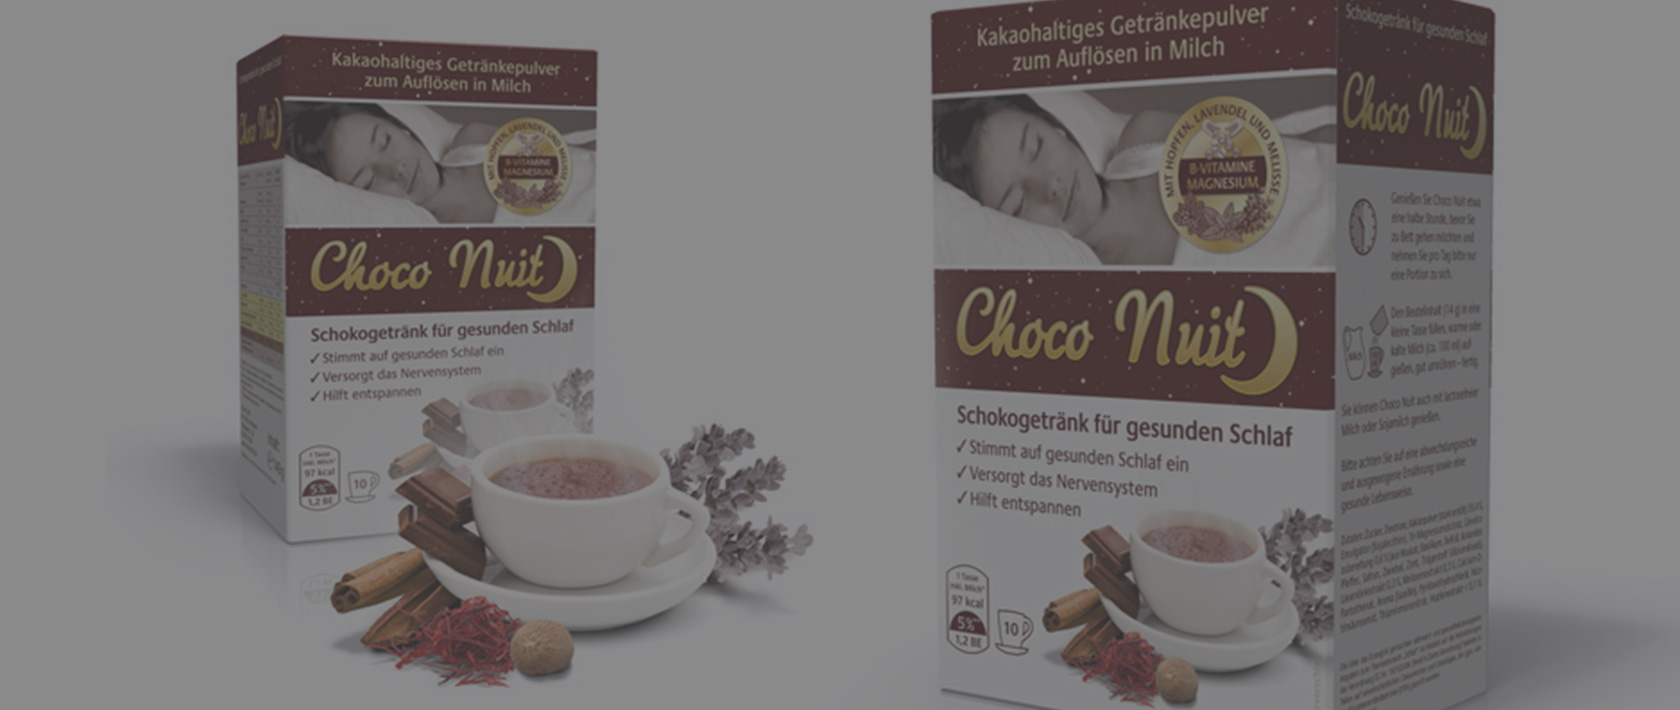 Packaging Design für Choco Nuit